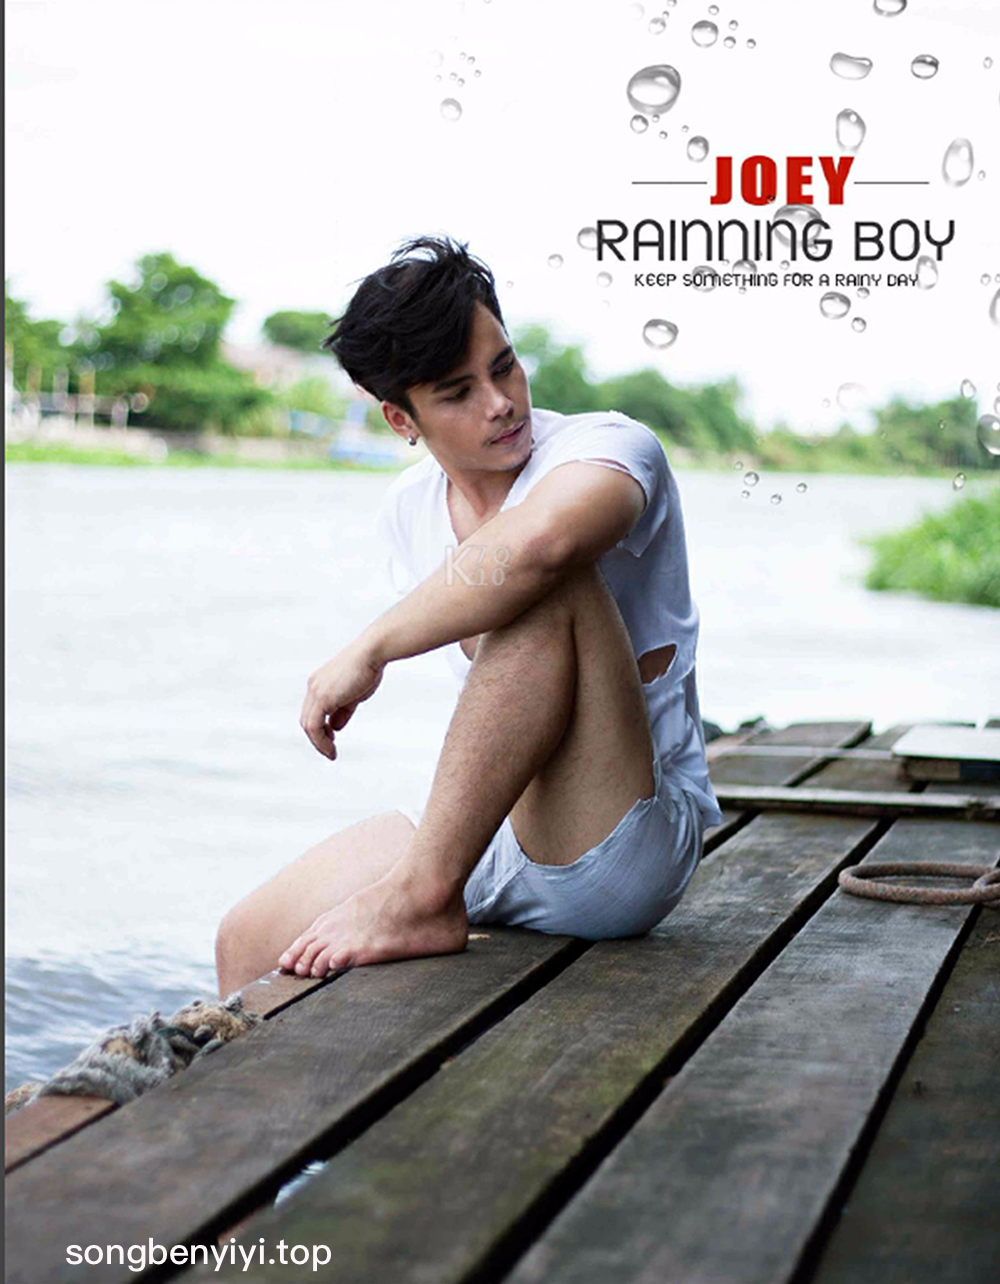 MAN OMG No.7 JOEY RAINING BOY 朝雨男孩 全見 - 獨家特刊-04.png